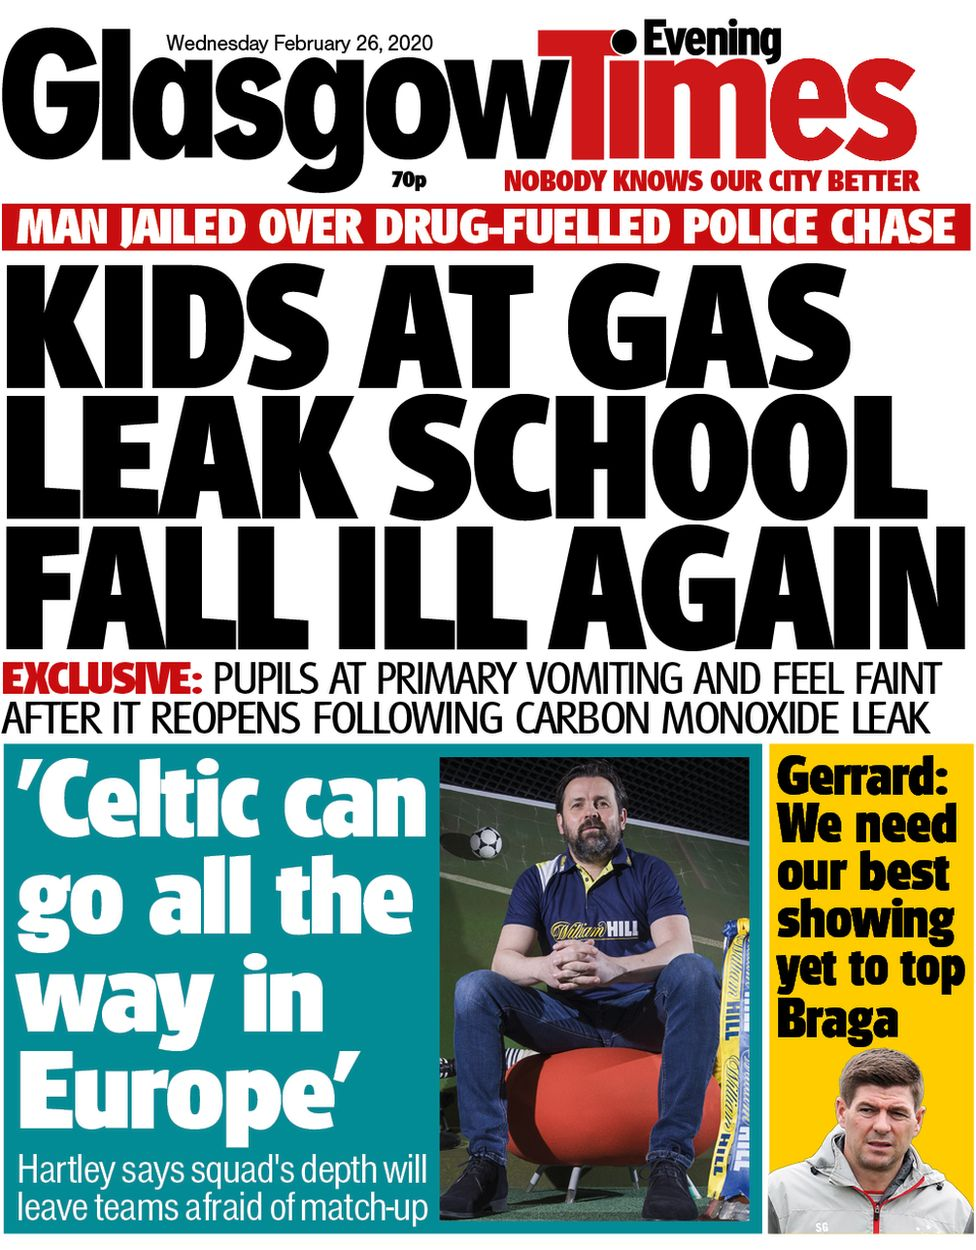 Glasgow evening times front page